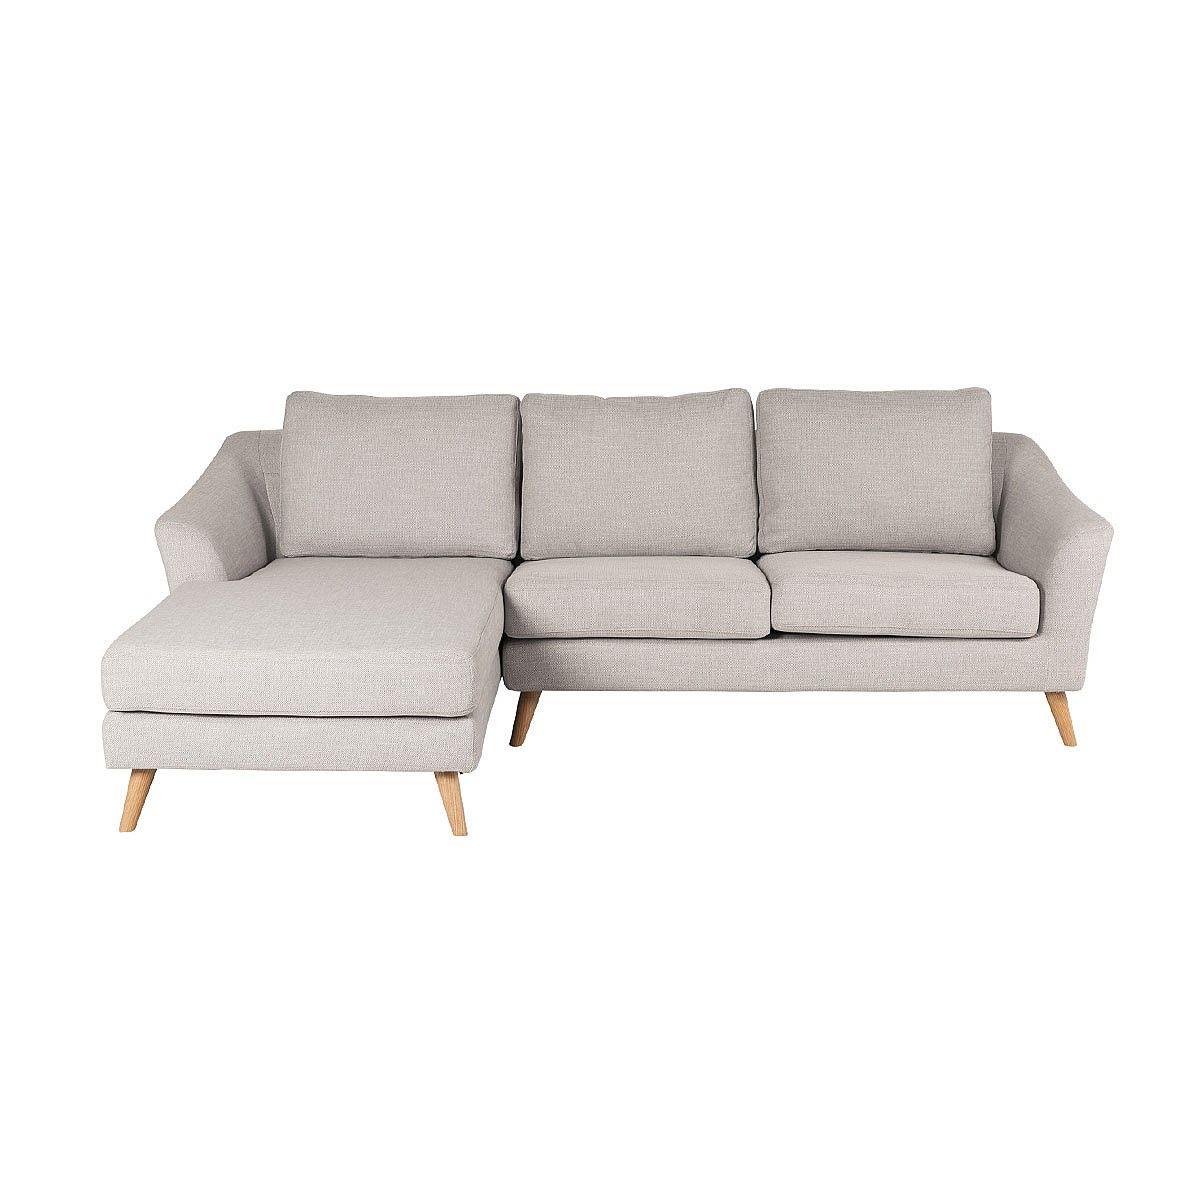 Hampton 2 Seater With Left Hand Chaise Light Grey Sofas Living Nood Nz Sofa Gray Sofa Living Sofa Shop